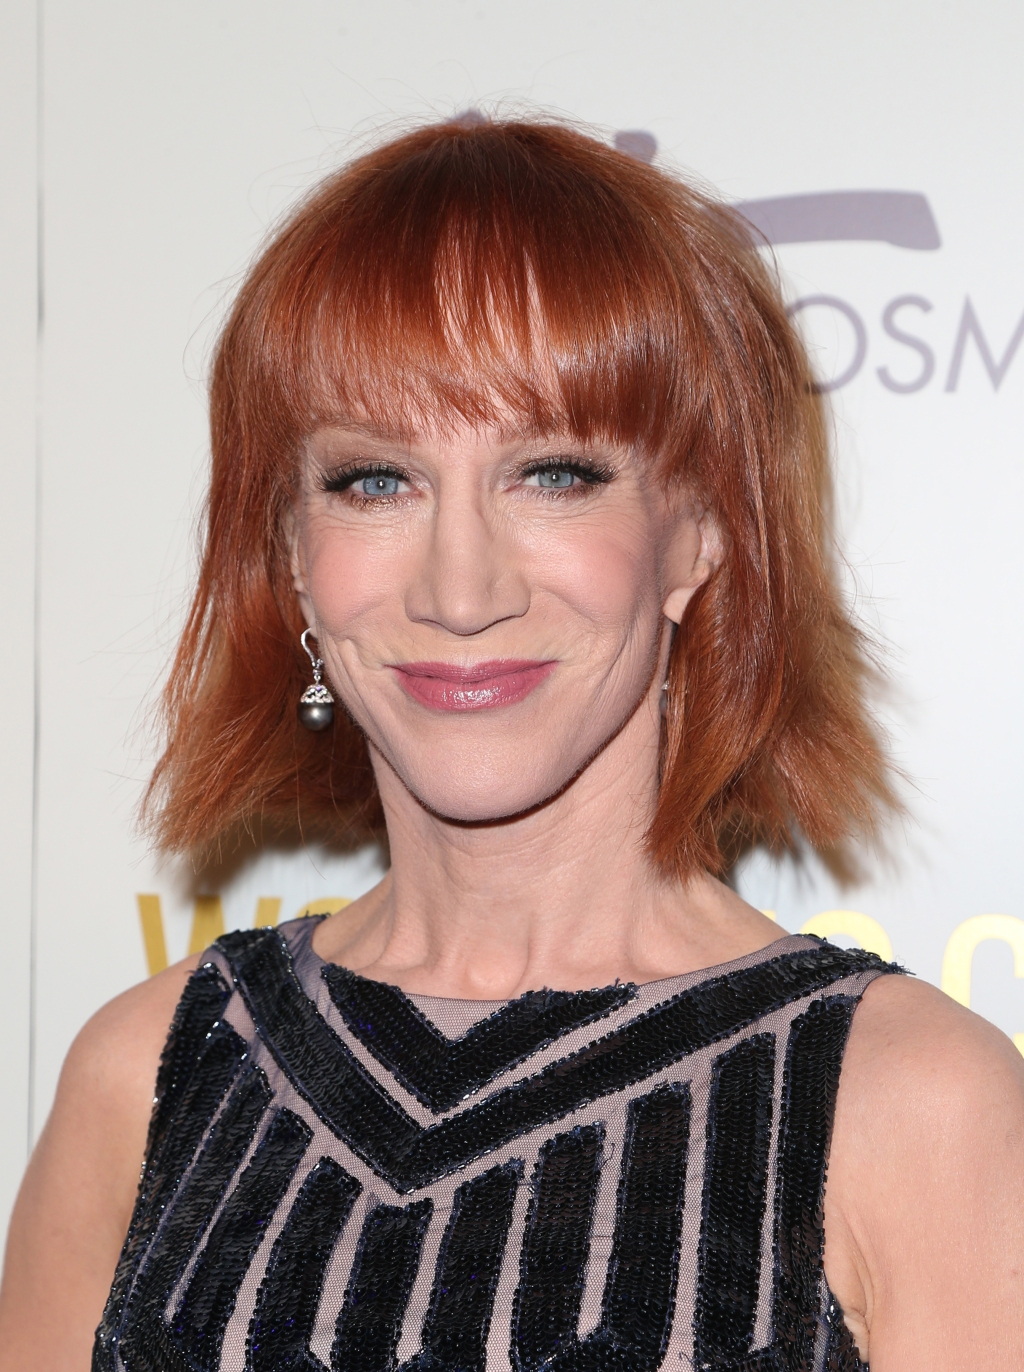 Kathy Griffin may have gone too far with Trump head joke